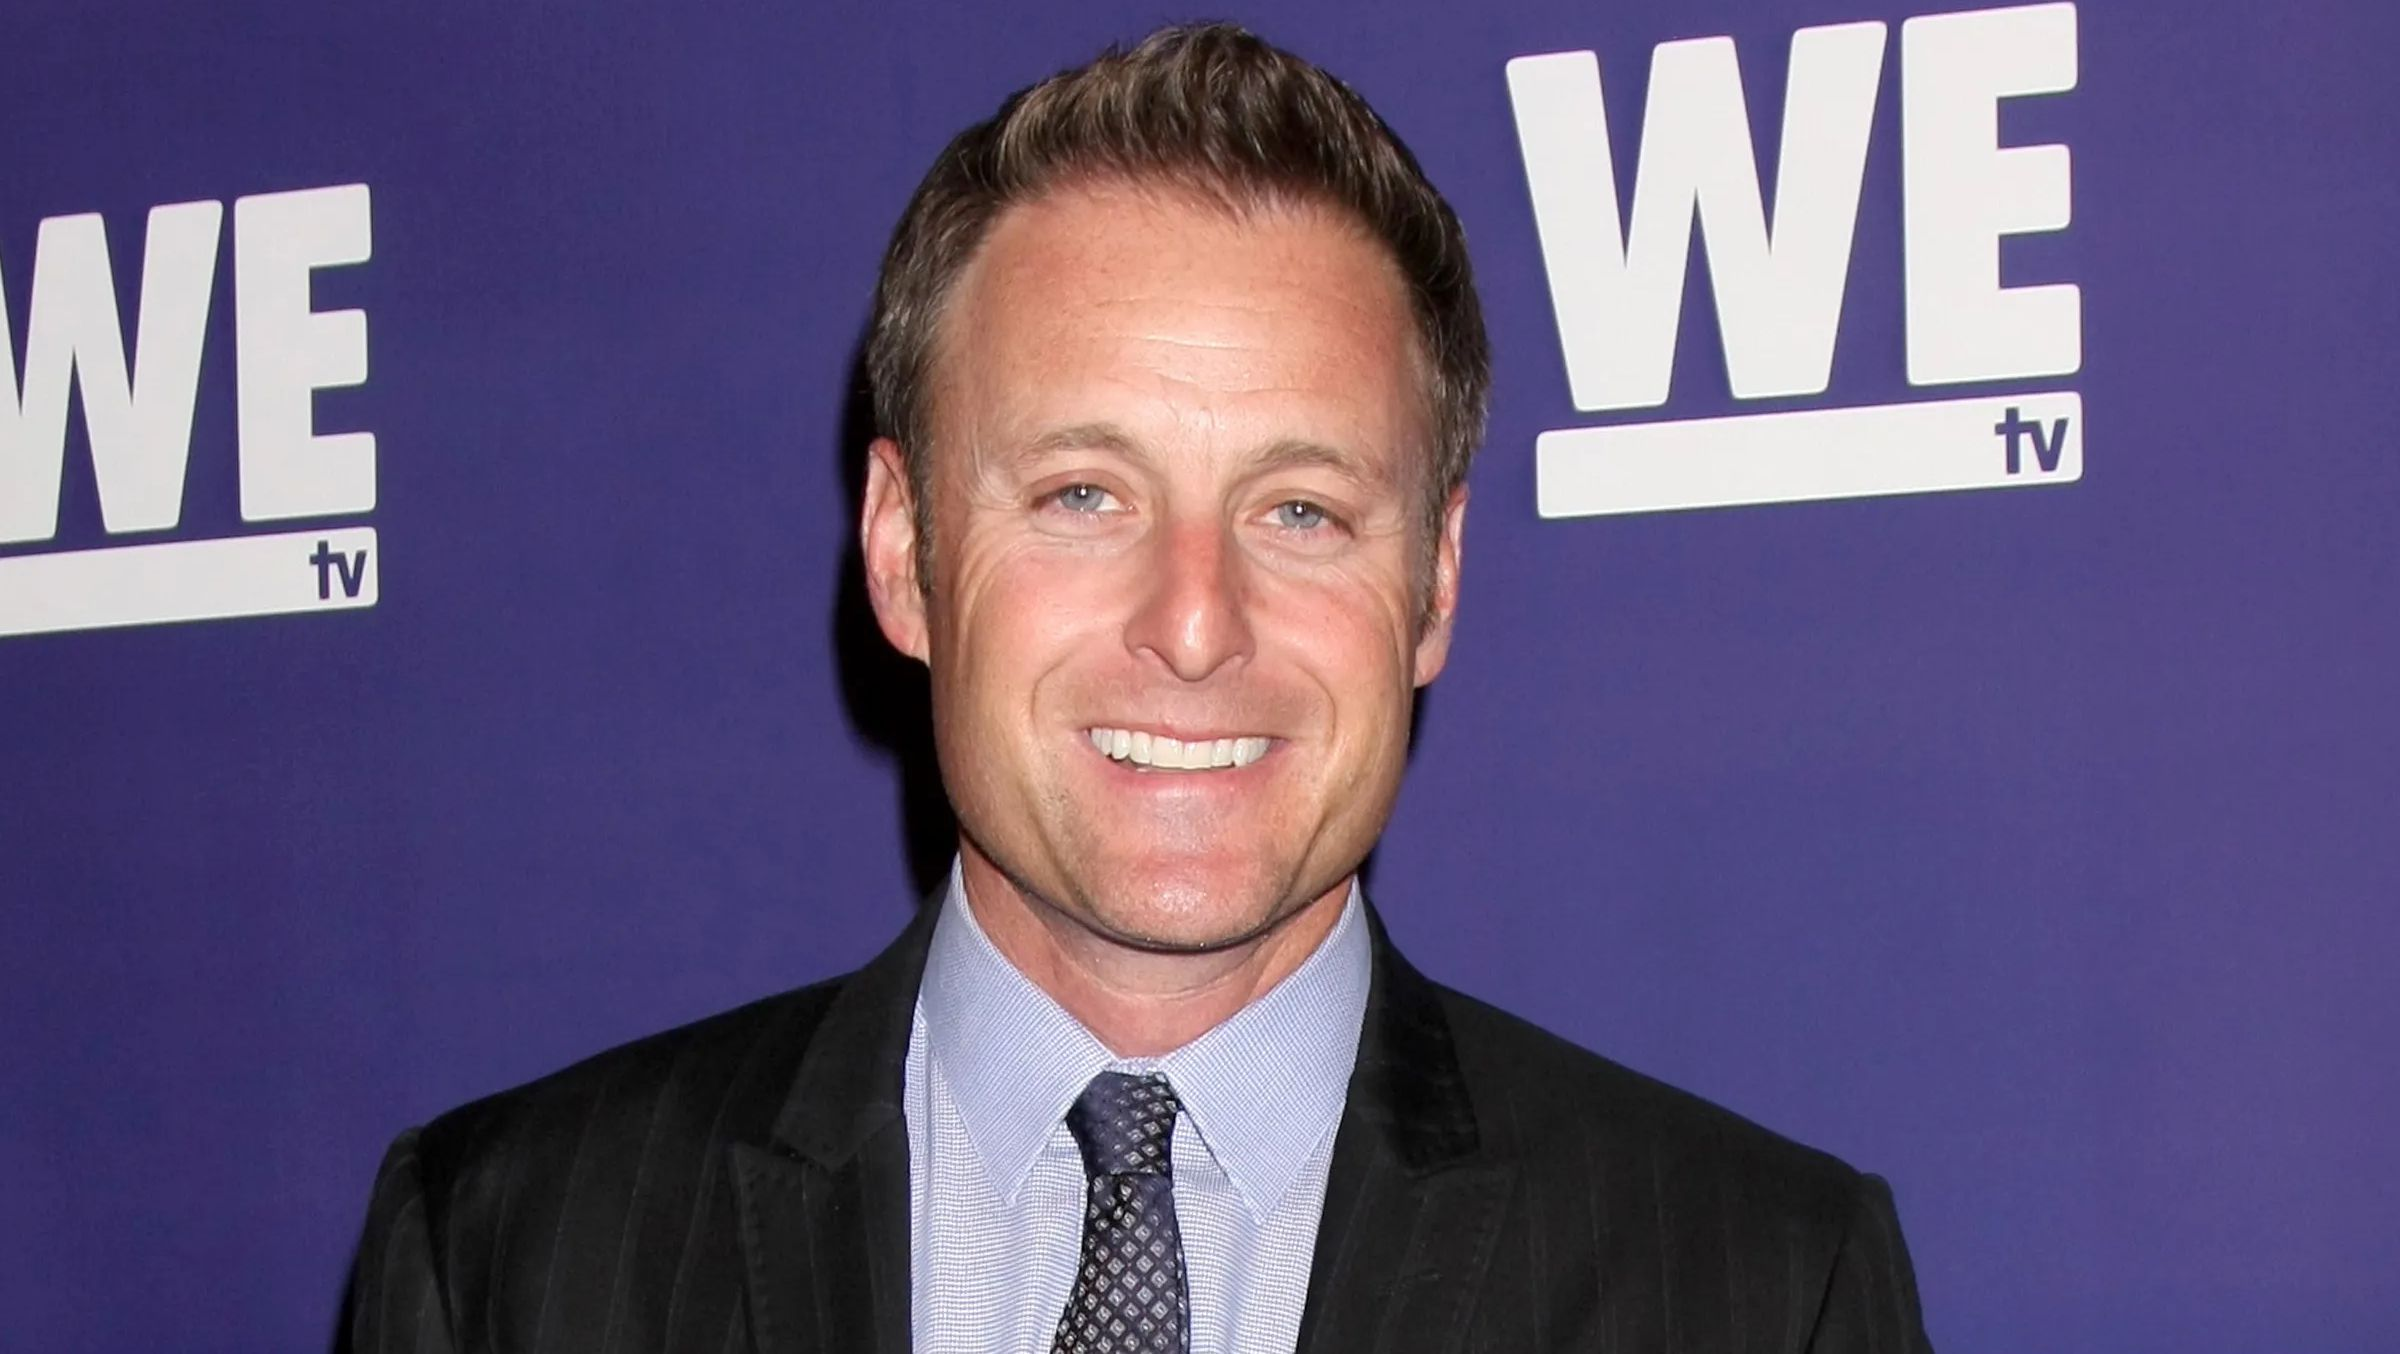 Chris Harrison smiling at a WEtv event